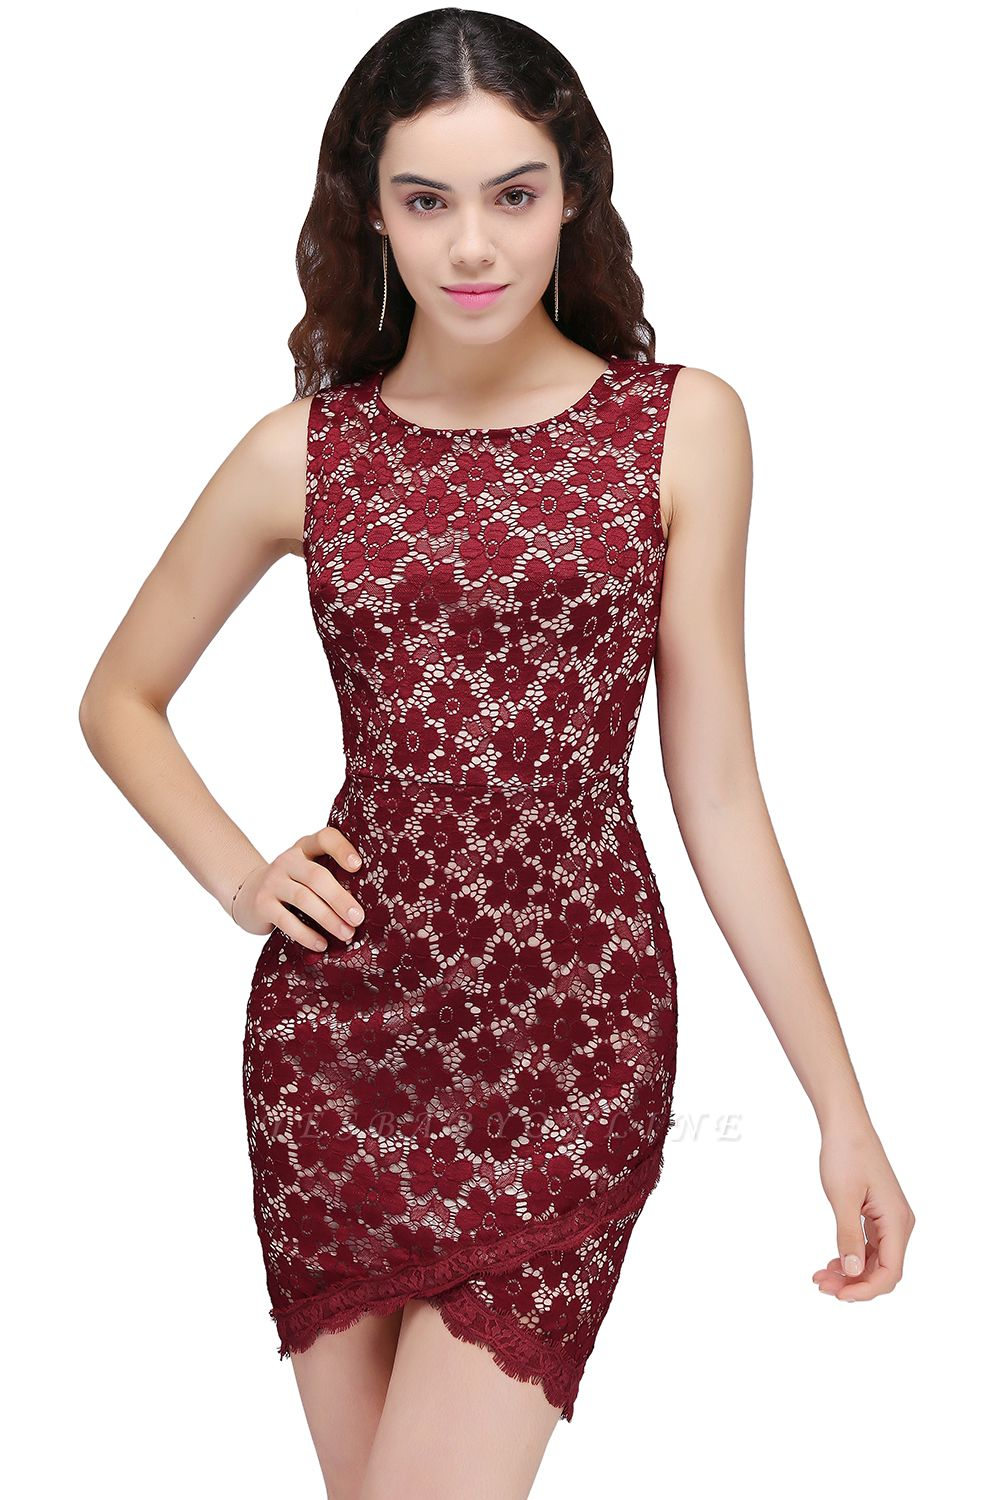 Cheap Bodycon Round Neck Short Lace Burgundy Homecoming Dress in Stock